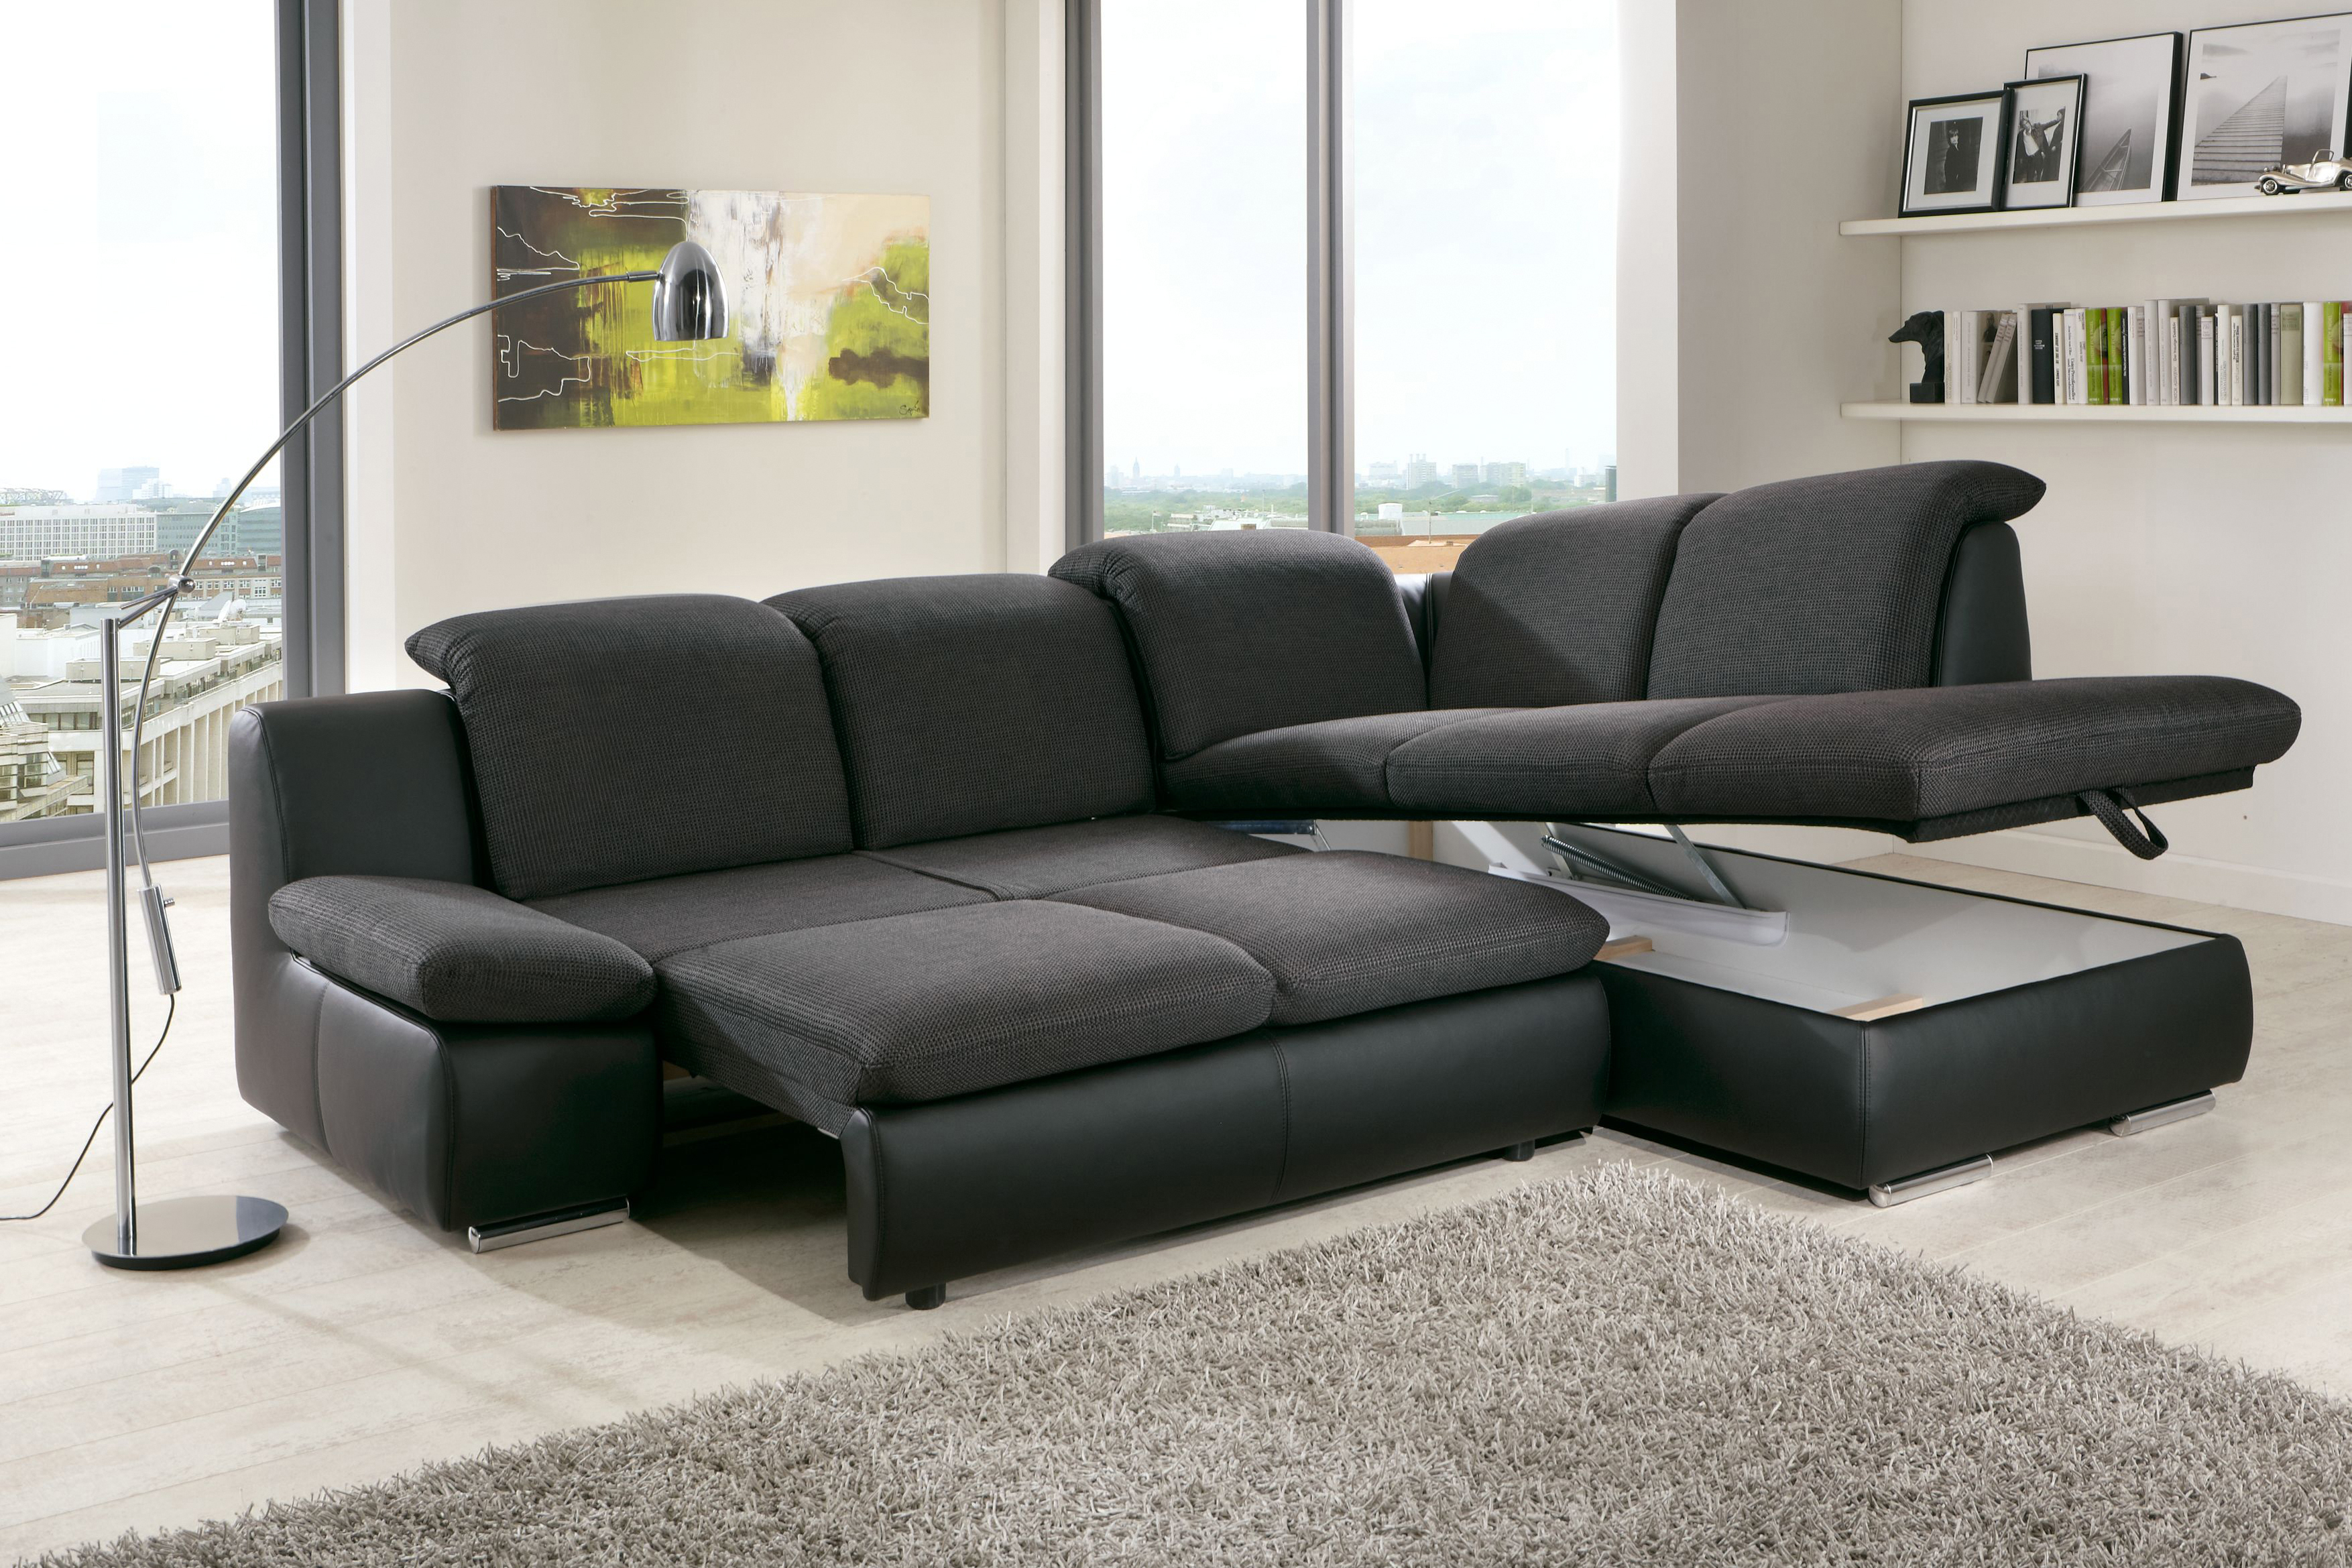 ecksofa mit schlaffunktion poco inspirierendes design f r wohnm bel. Black Bedroom Furniture Sets. Home Design Ideas